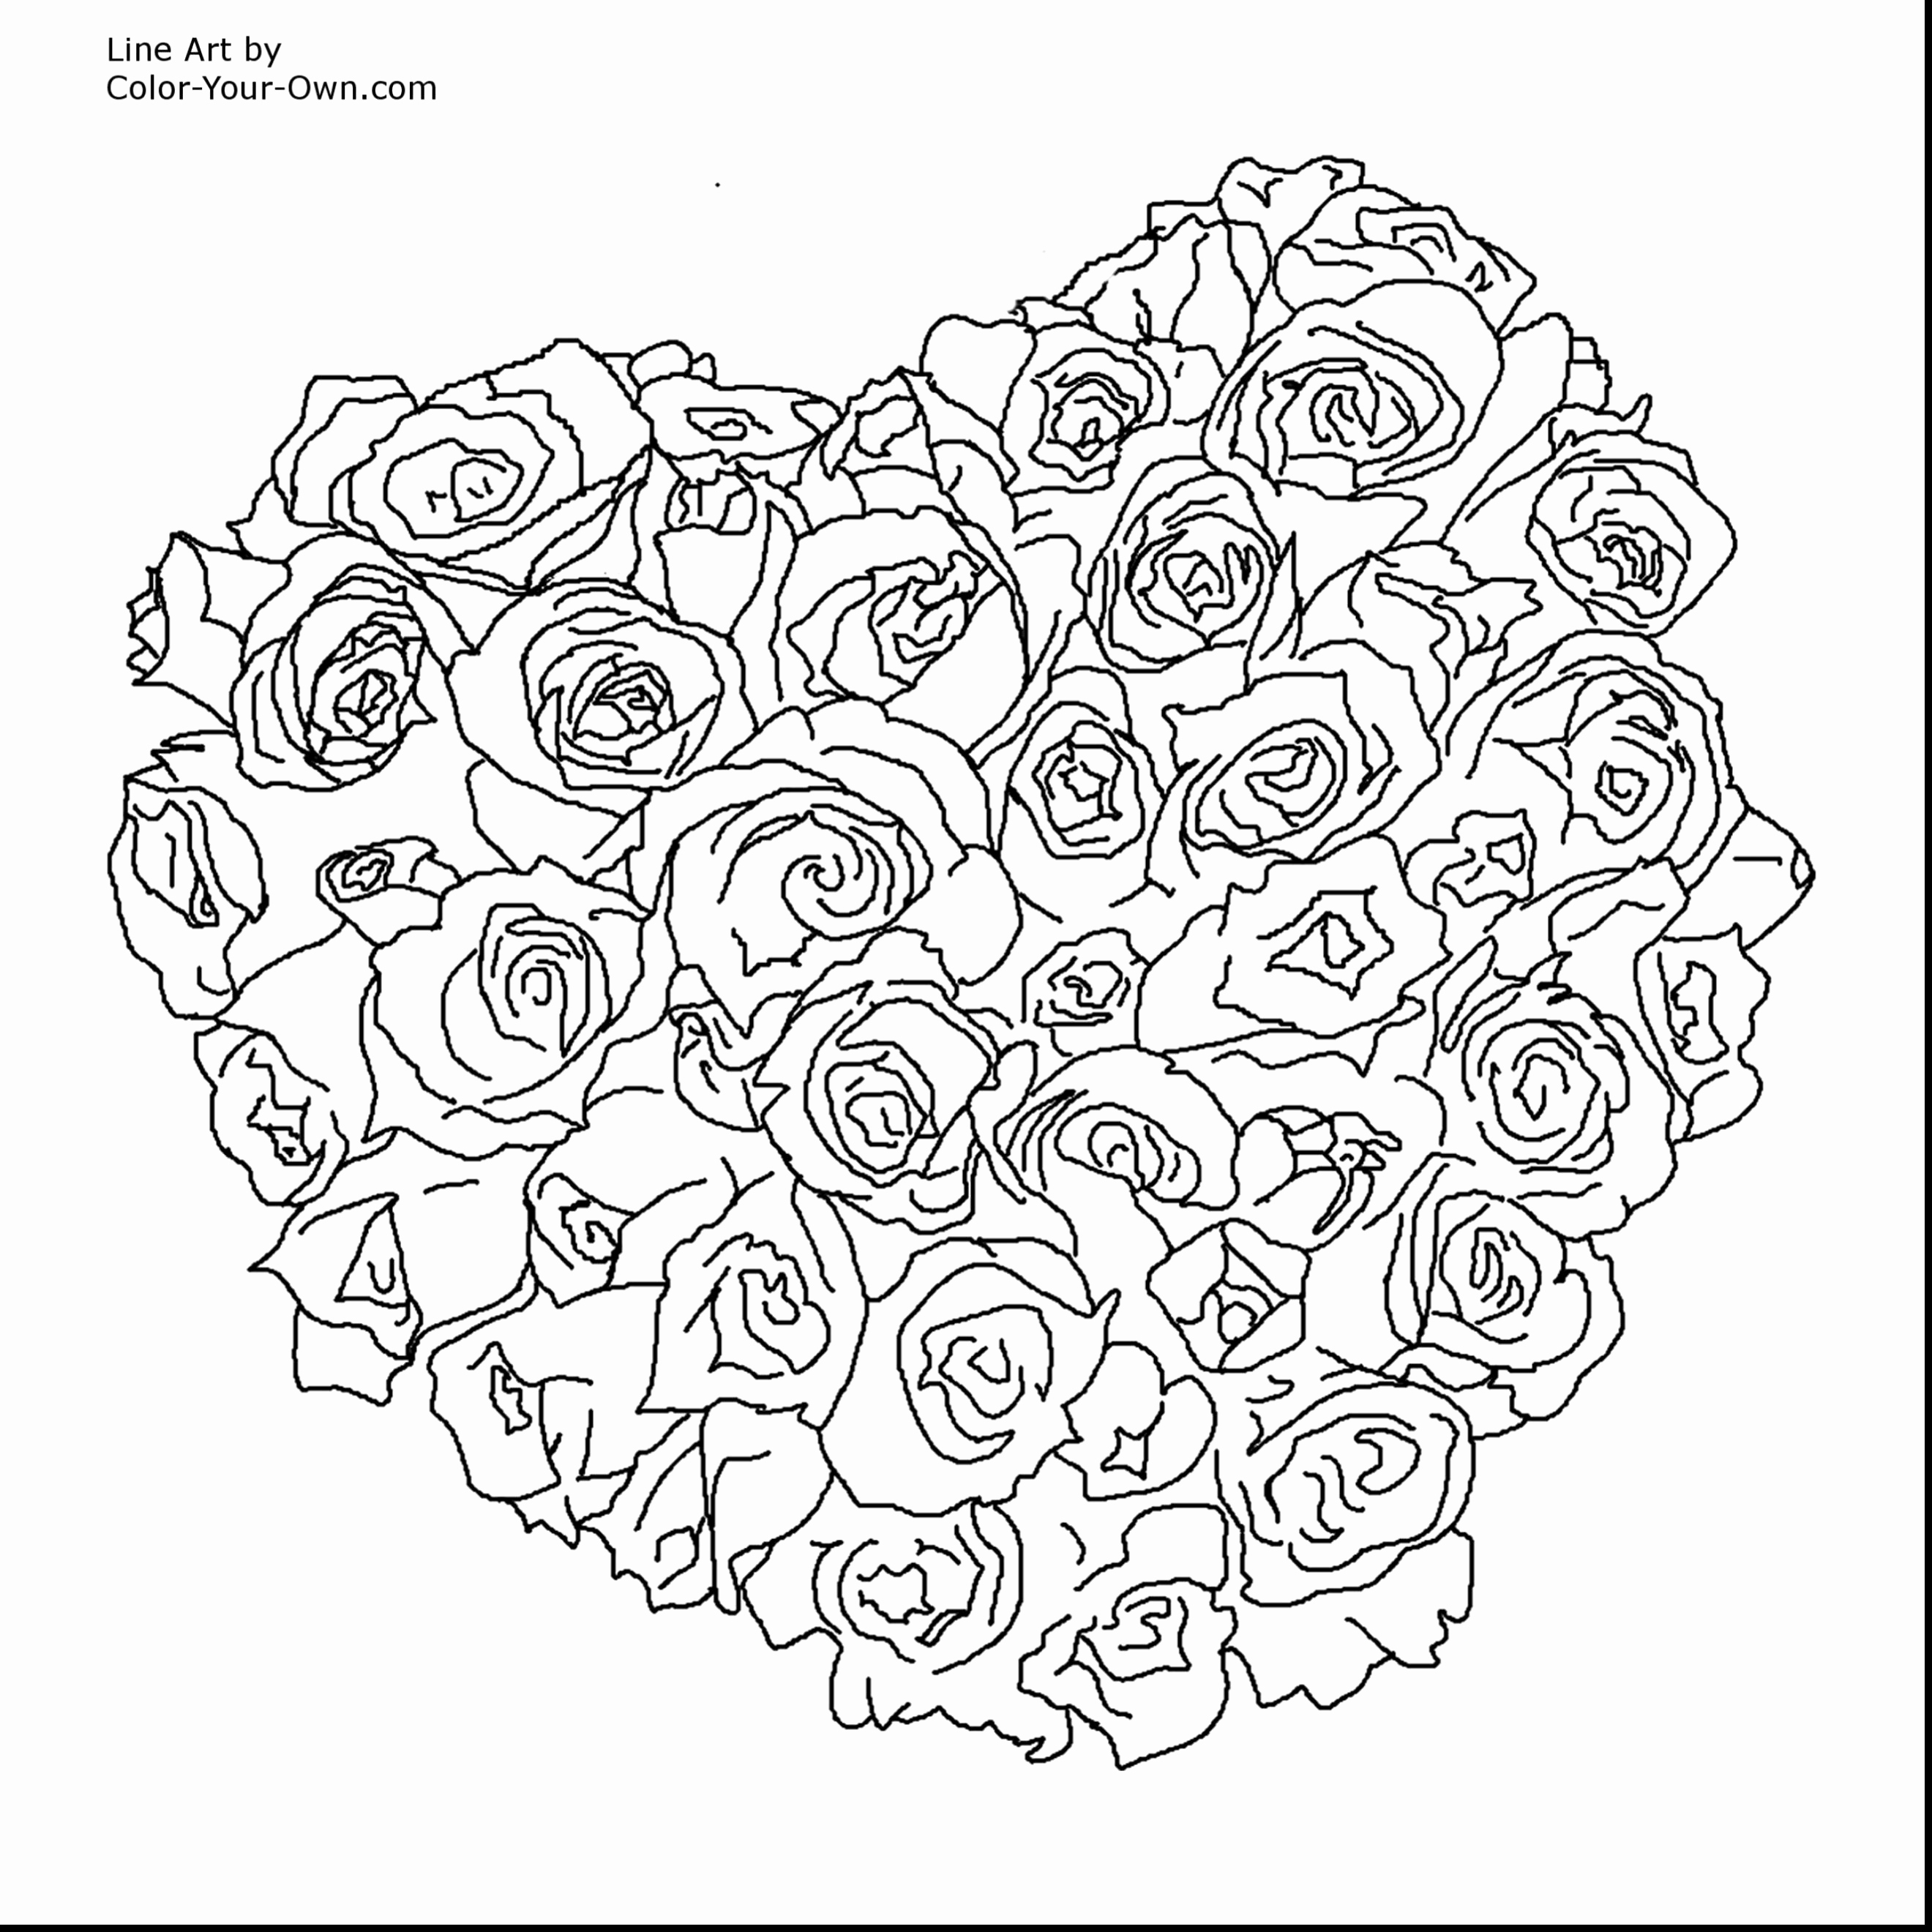 2640x2640 Queen Esther Coloring Pages Best Of Lovely Coloring Pages Rose